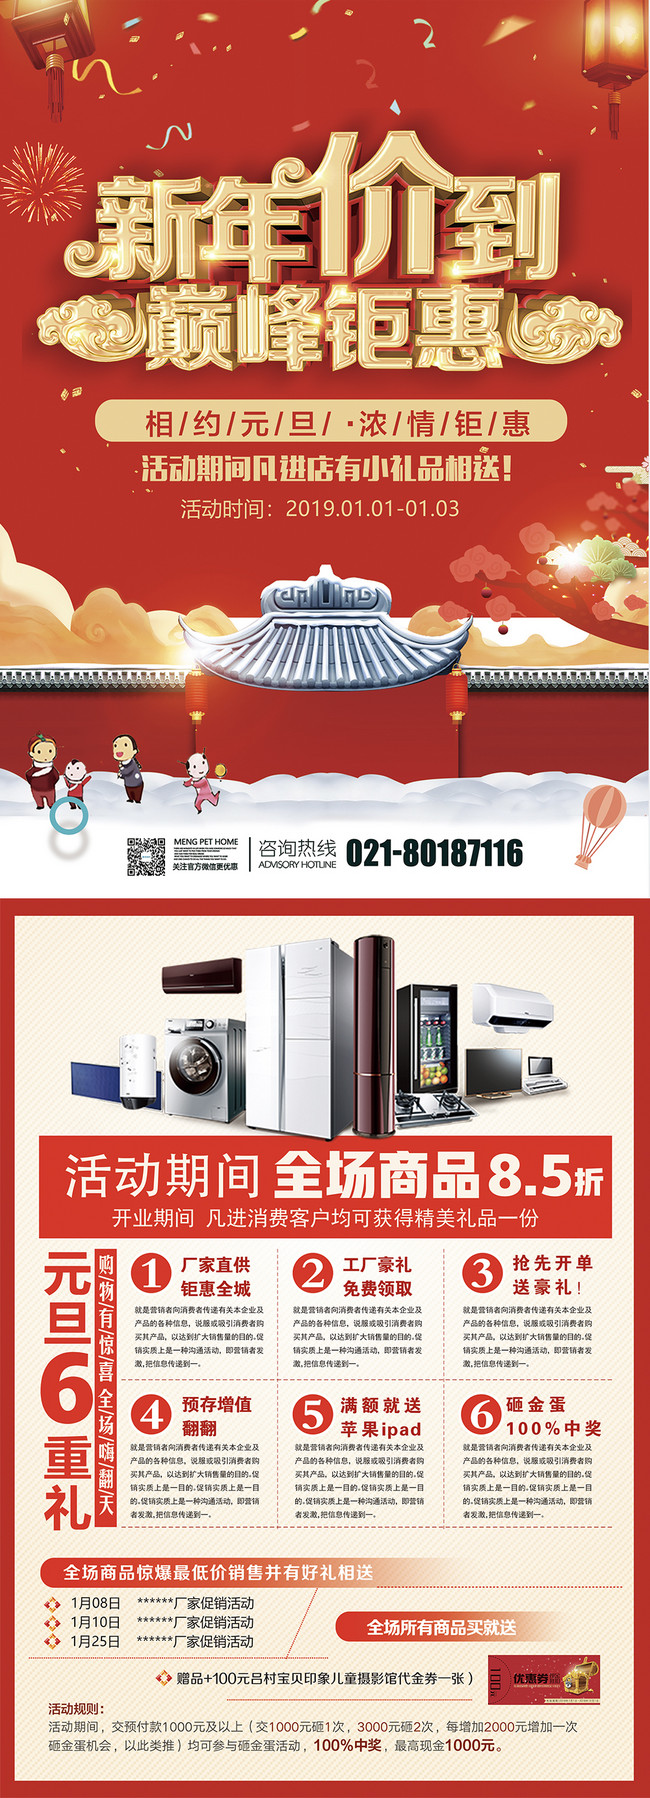 Red New Years Price Promotion List For Home Appliances Template Image Picture Free Download 400862143 Lovepik Com